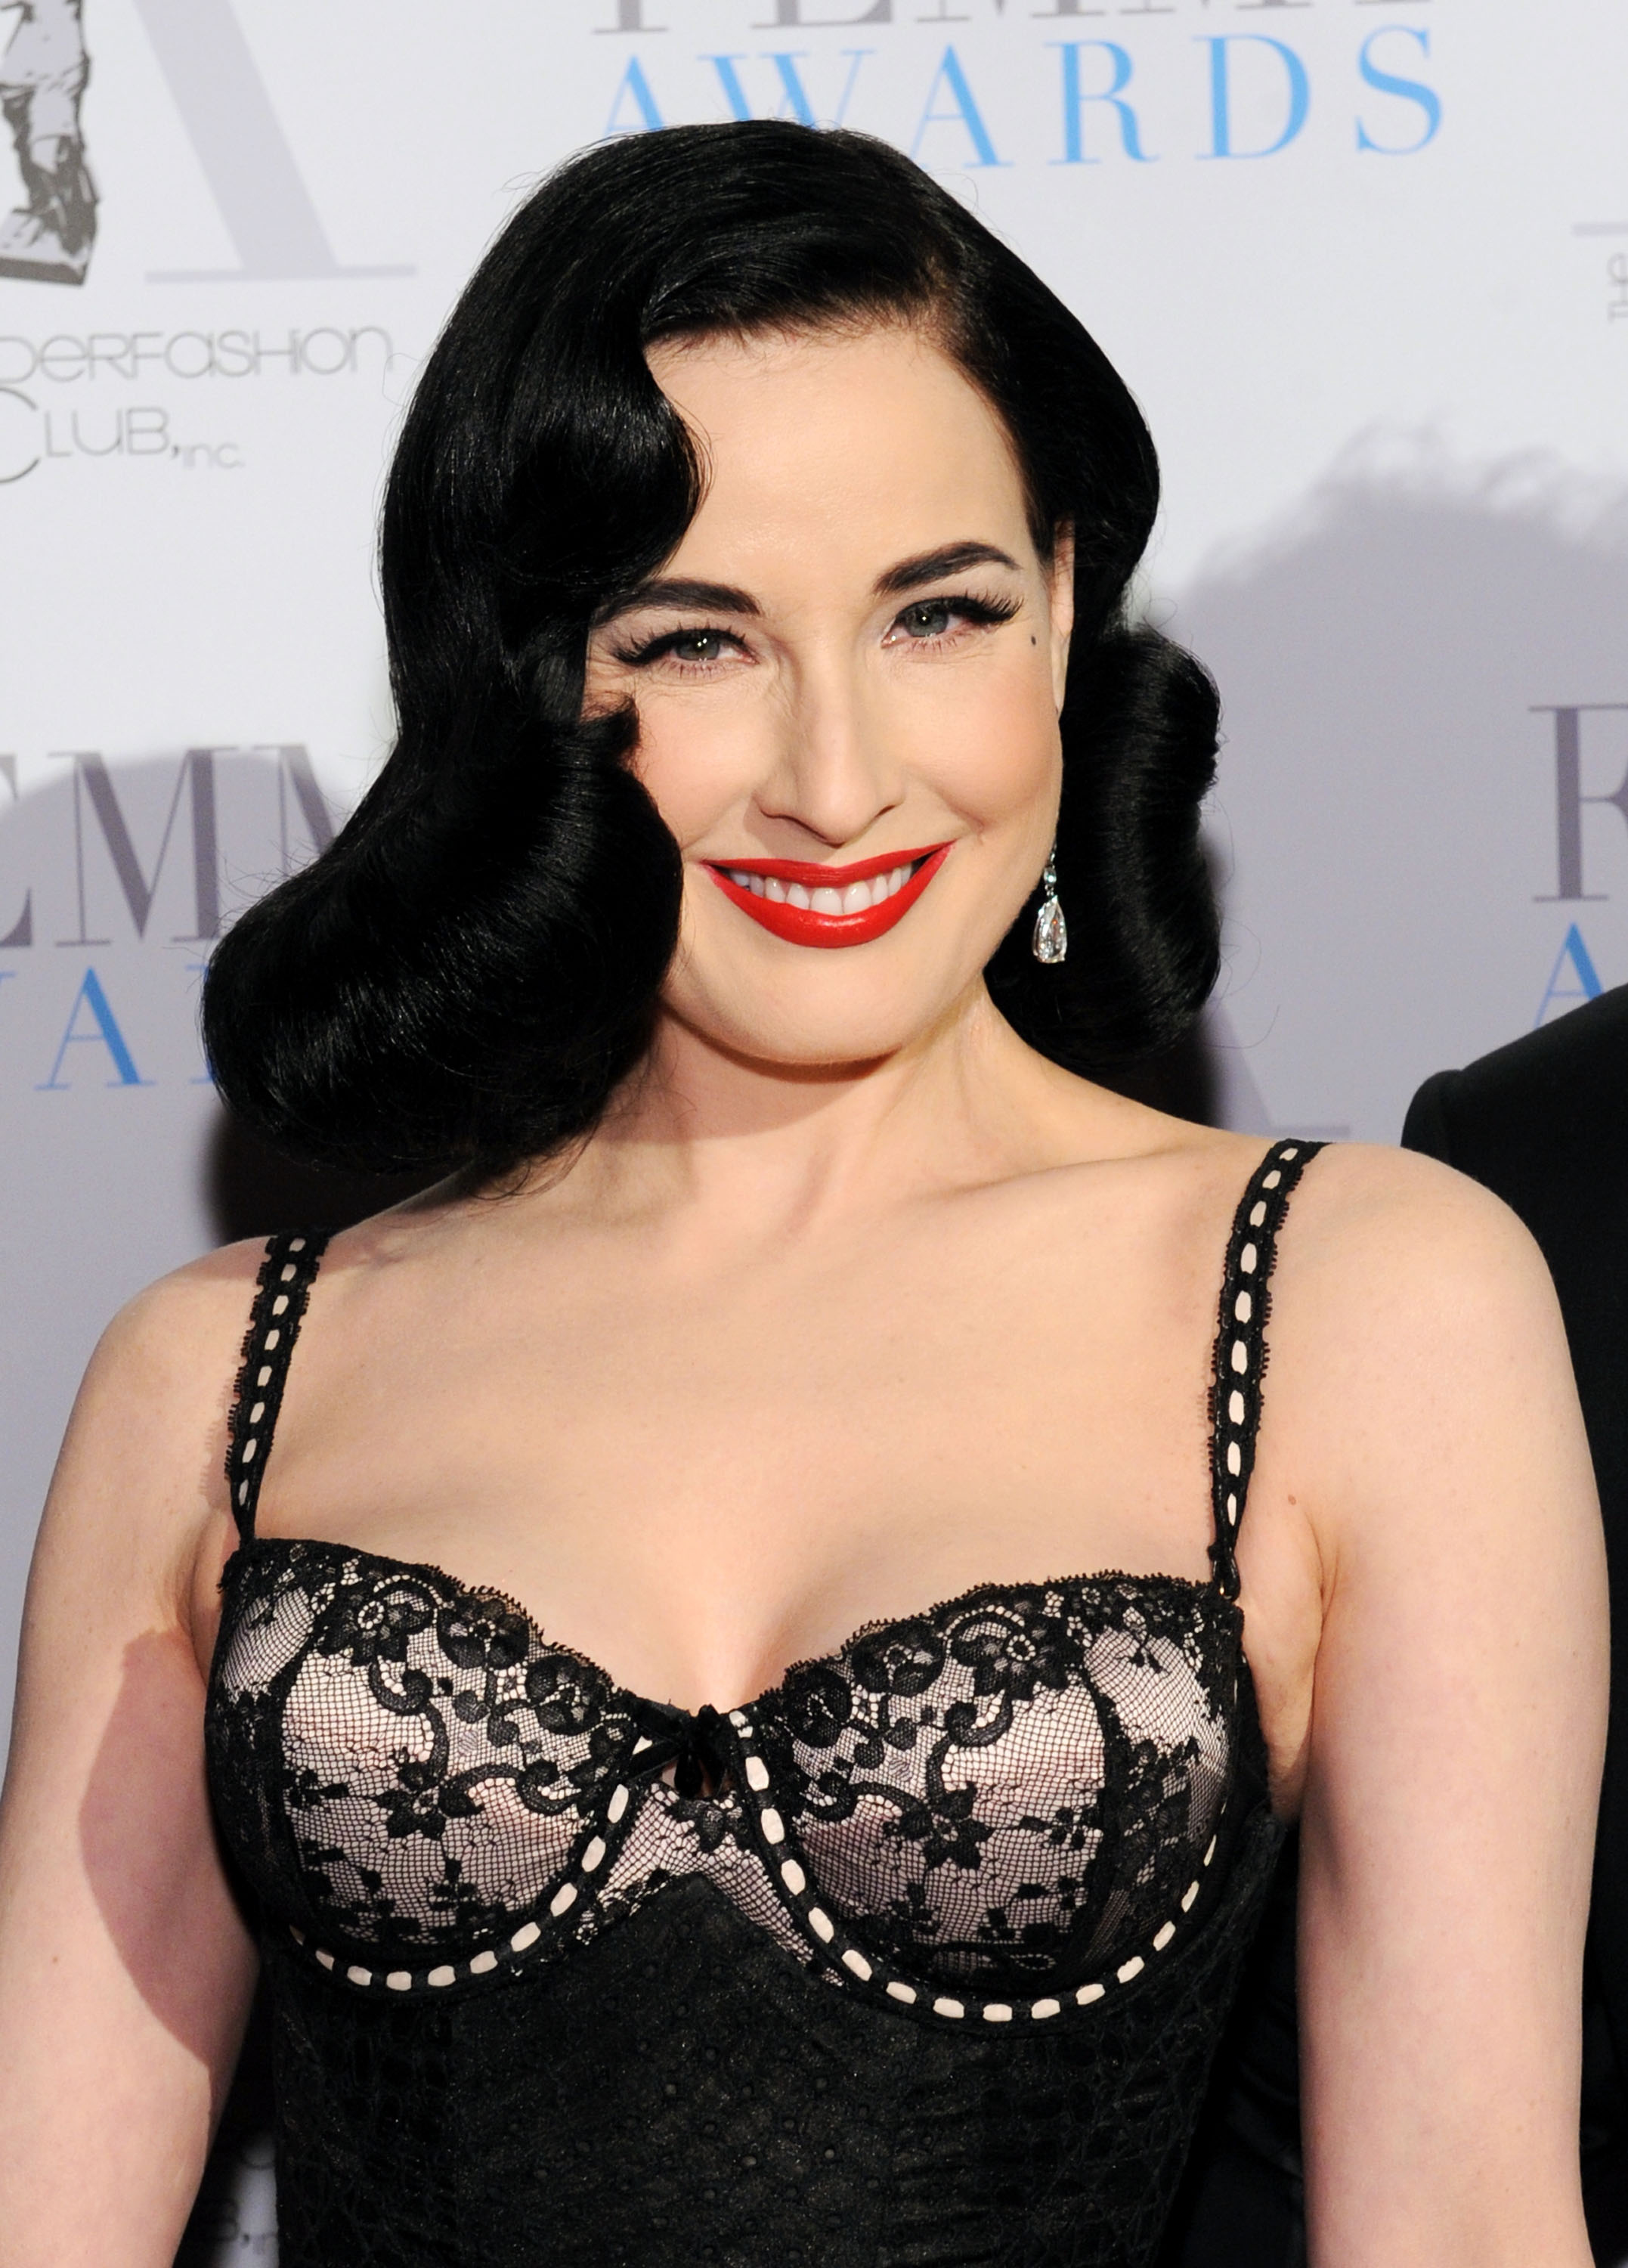 in bikini Photos Dita Von Teese naked photo 2017